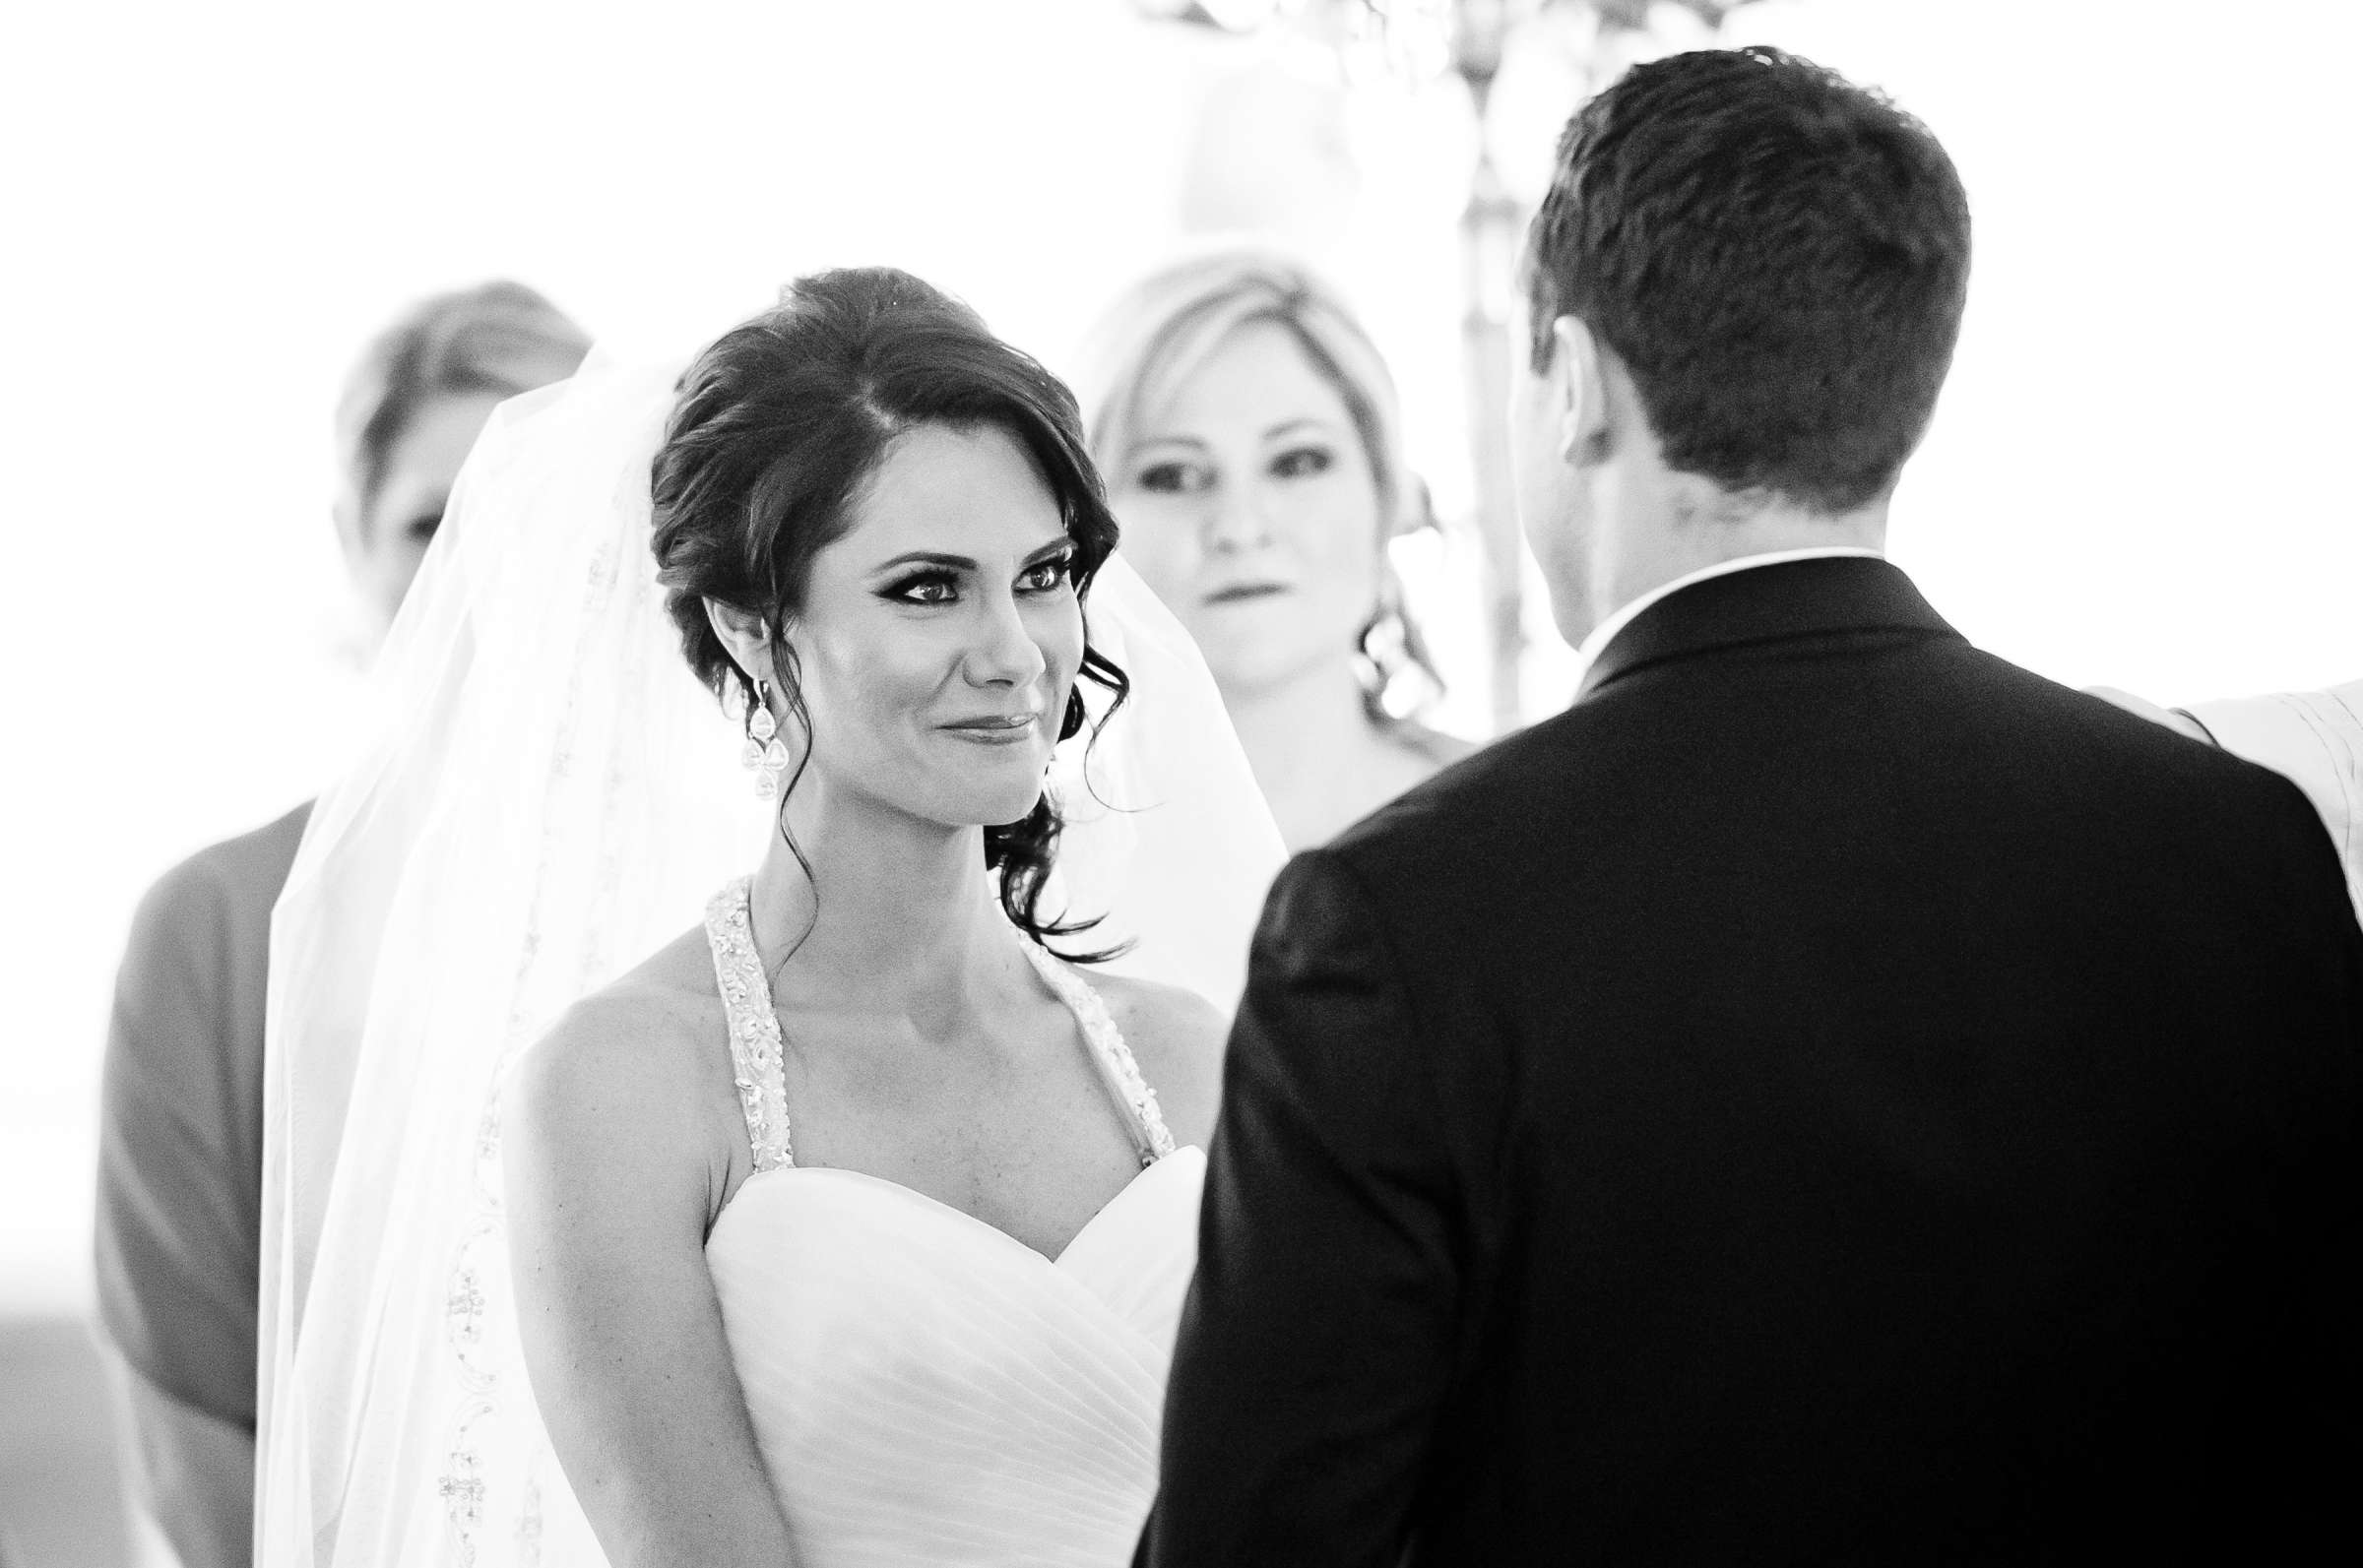 Fairmont Grand Del Mar Wedding, Angela and Tom Wedding Photo #32 by True Photography